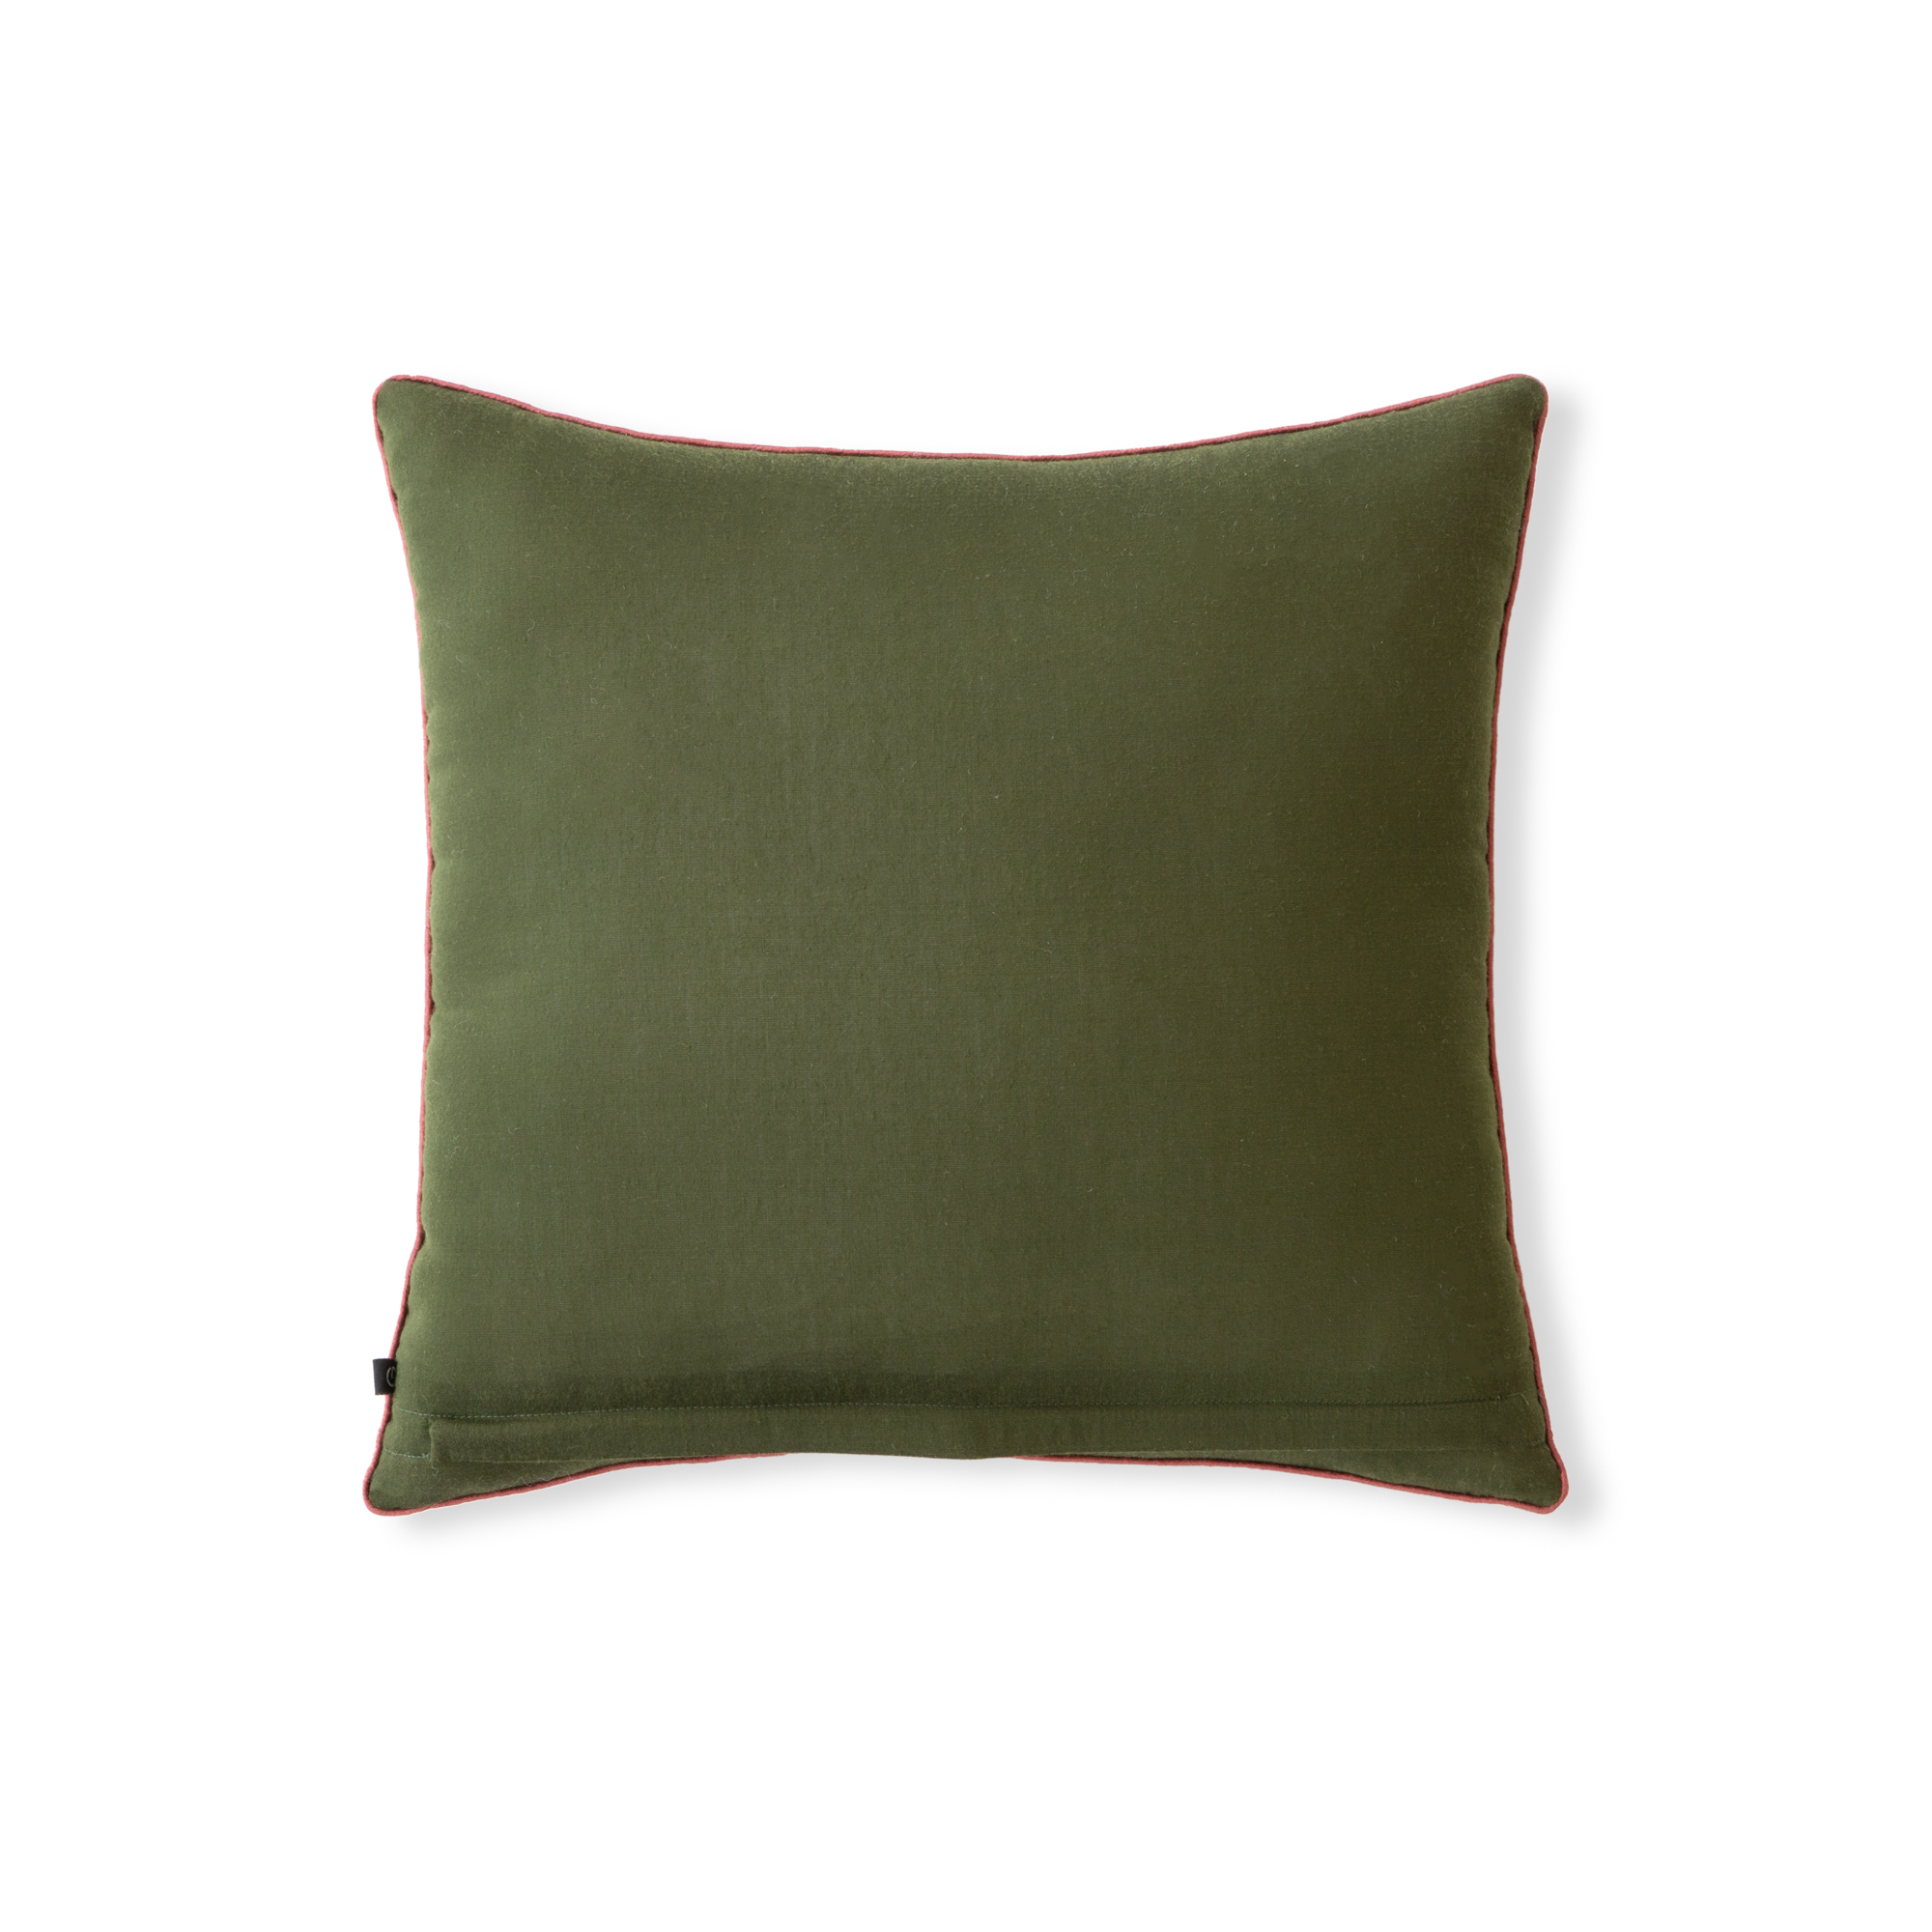 Under the Banyan Tree Cushion Cover